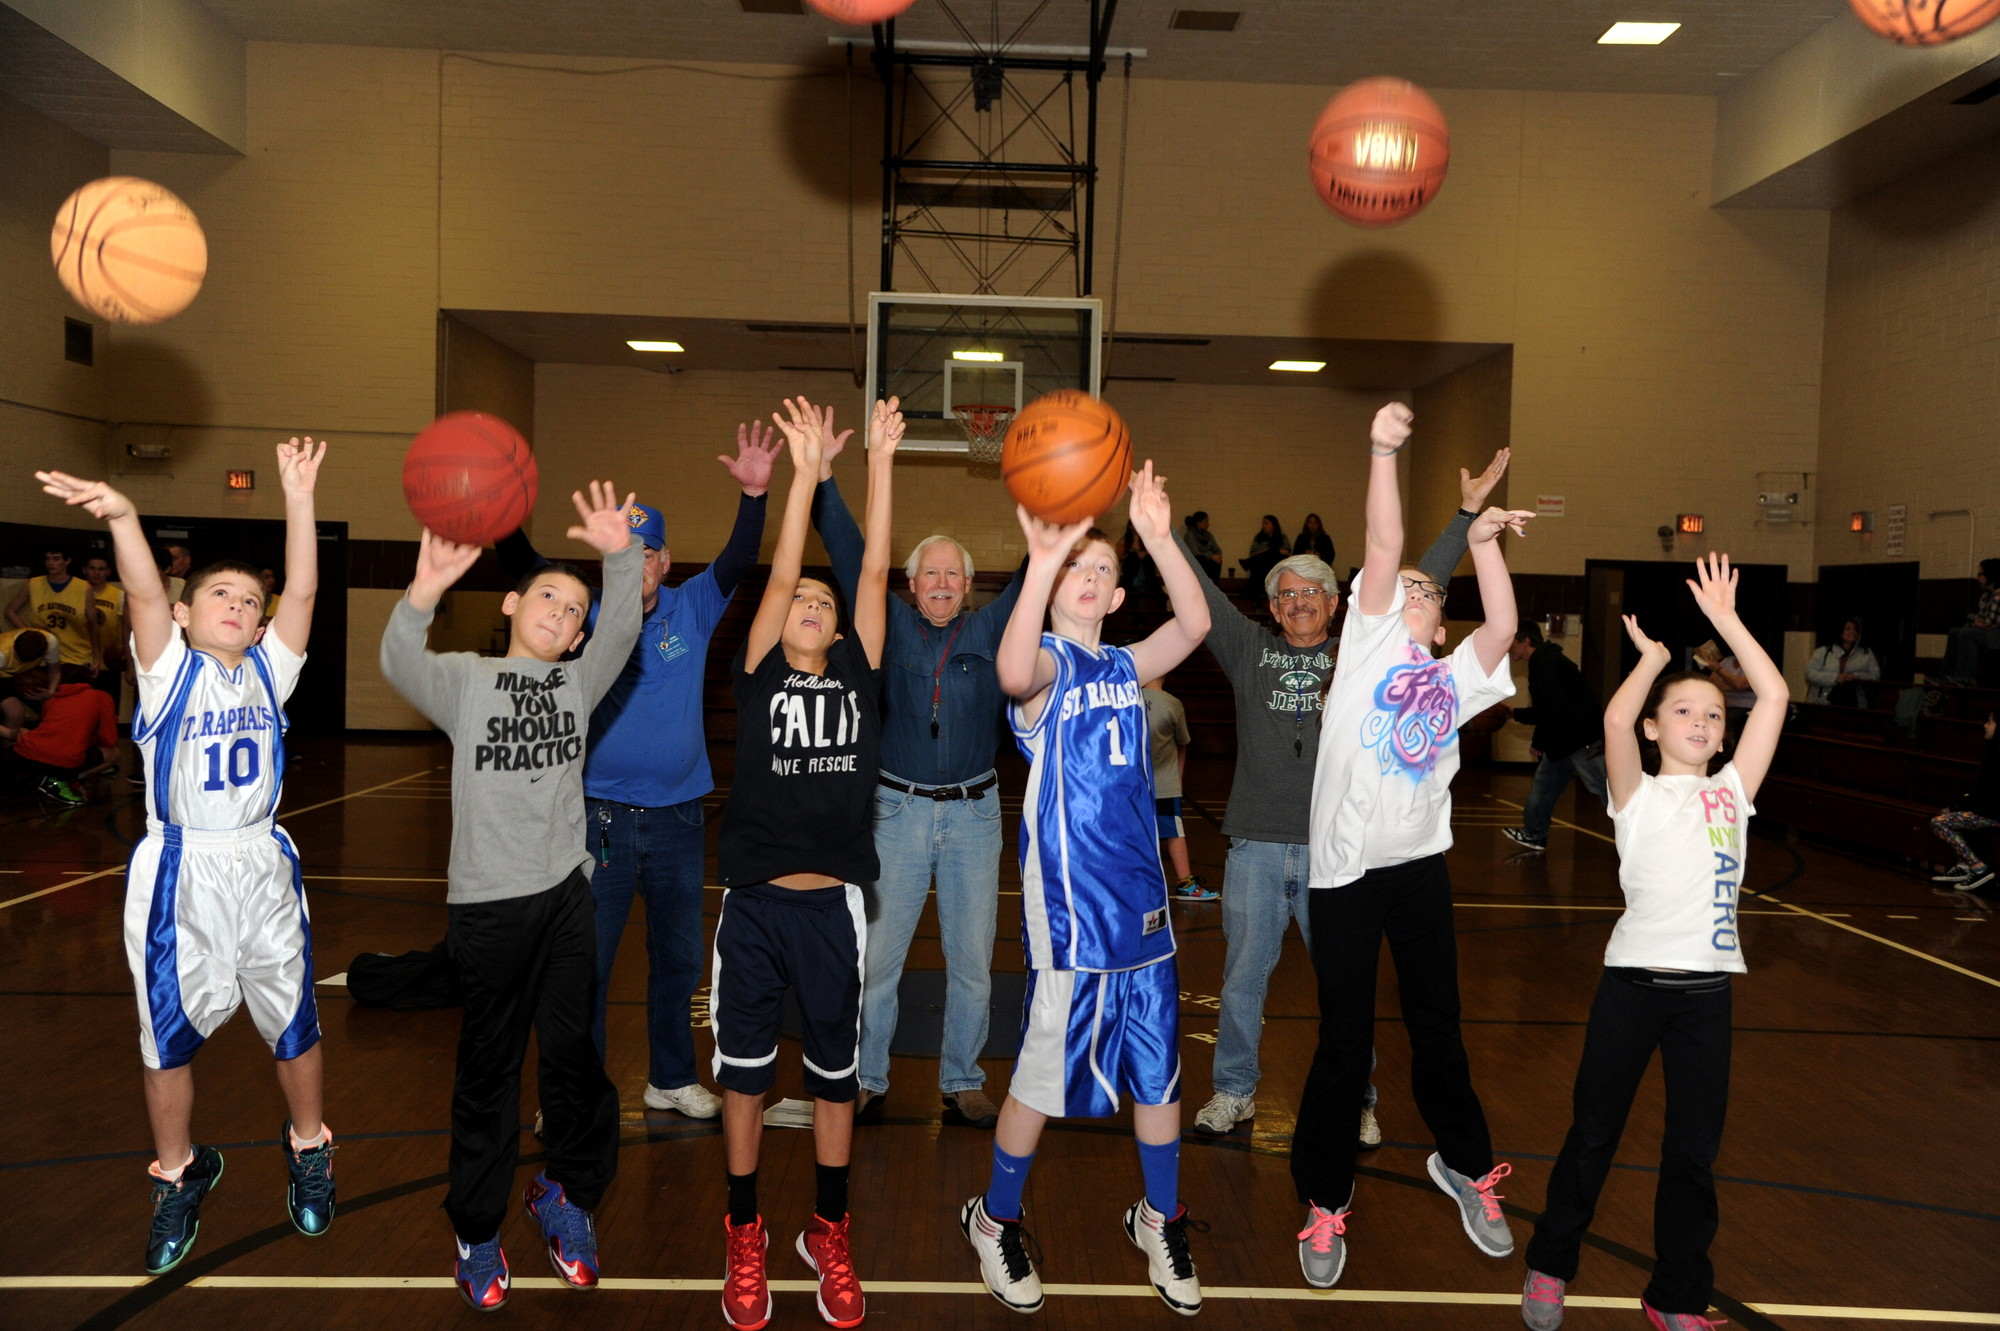 Nicholas Giardino, 9, far left, Jordan Chalmers, 10, Tyler Luciano, 12, Brendan Wilkowski, 11, Kerry Clark, 11, and Lindsay Solenski, 9, were among the winners of the Pope Pius XII Knights of Columbus annual free throw contest last Saturday at St. Raphael's Parish. Behind them, event organizers John Devany, partially obscured at left, Paul Wissert and Alan Bacci cheered them on.